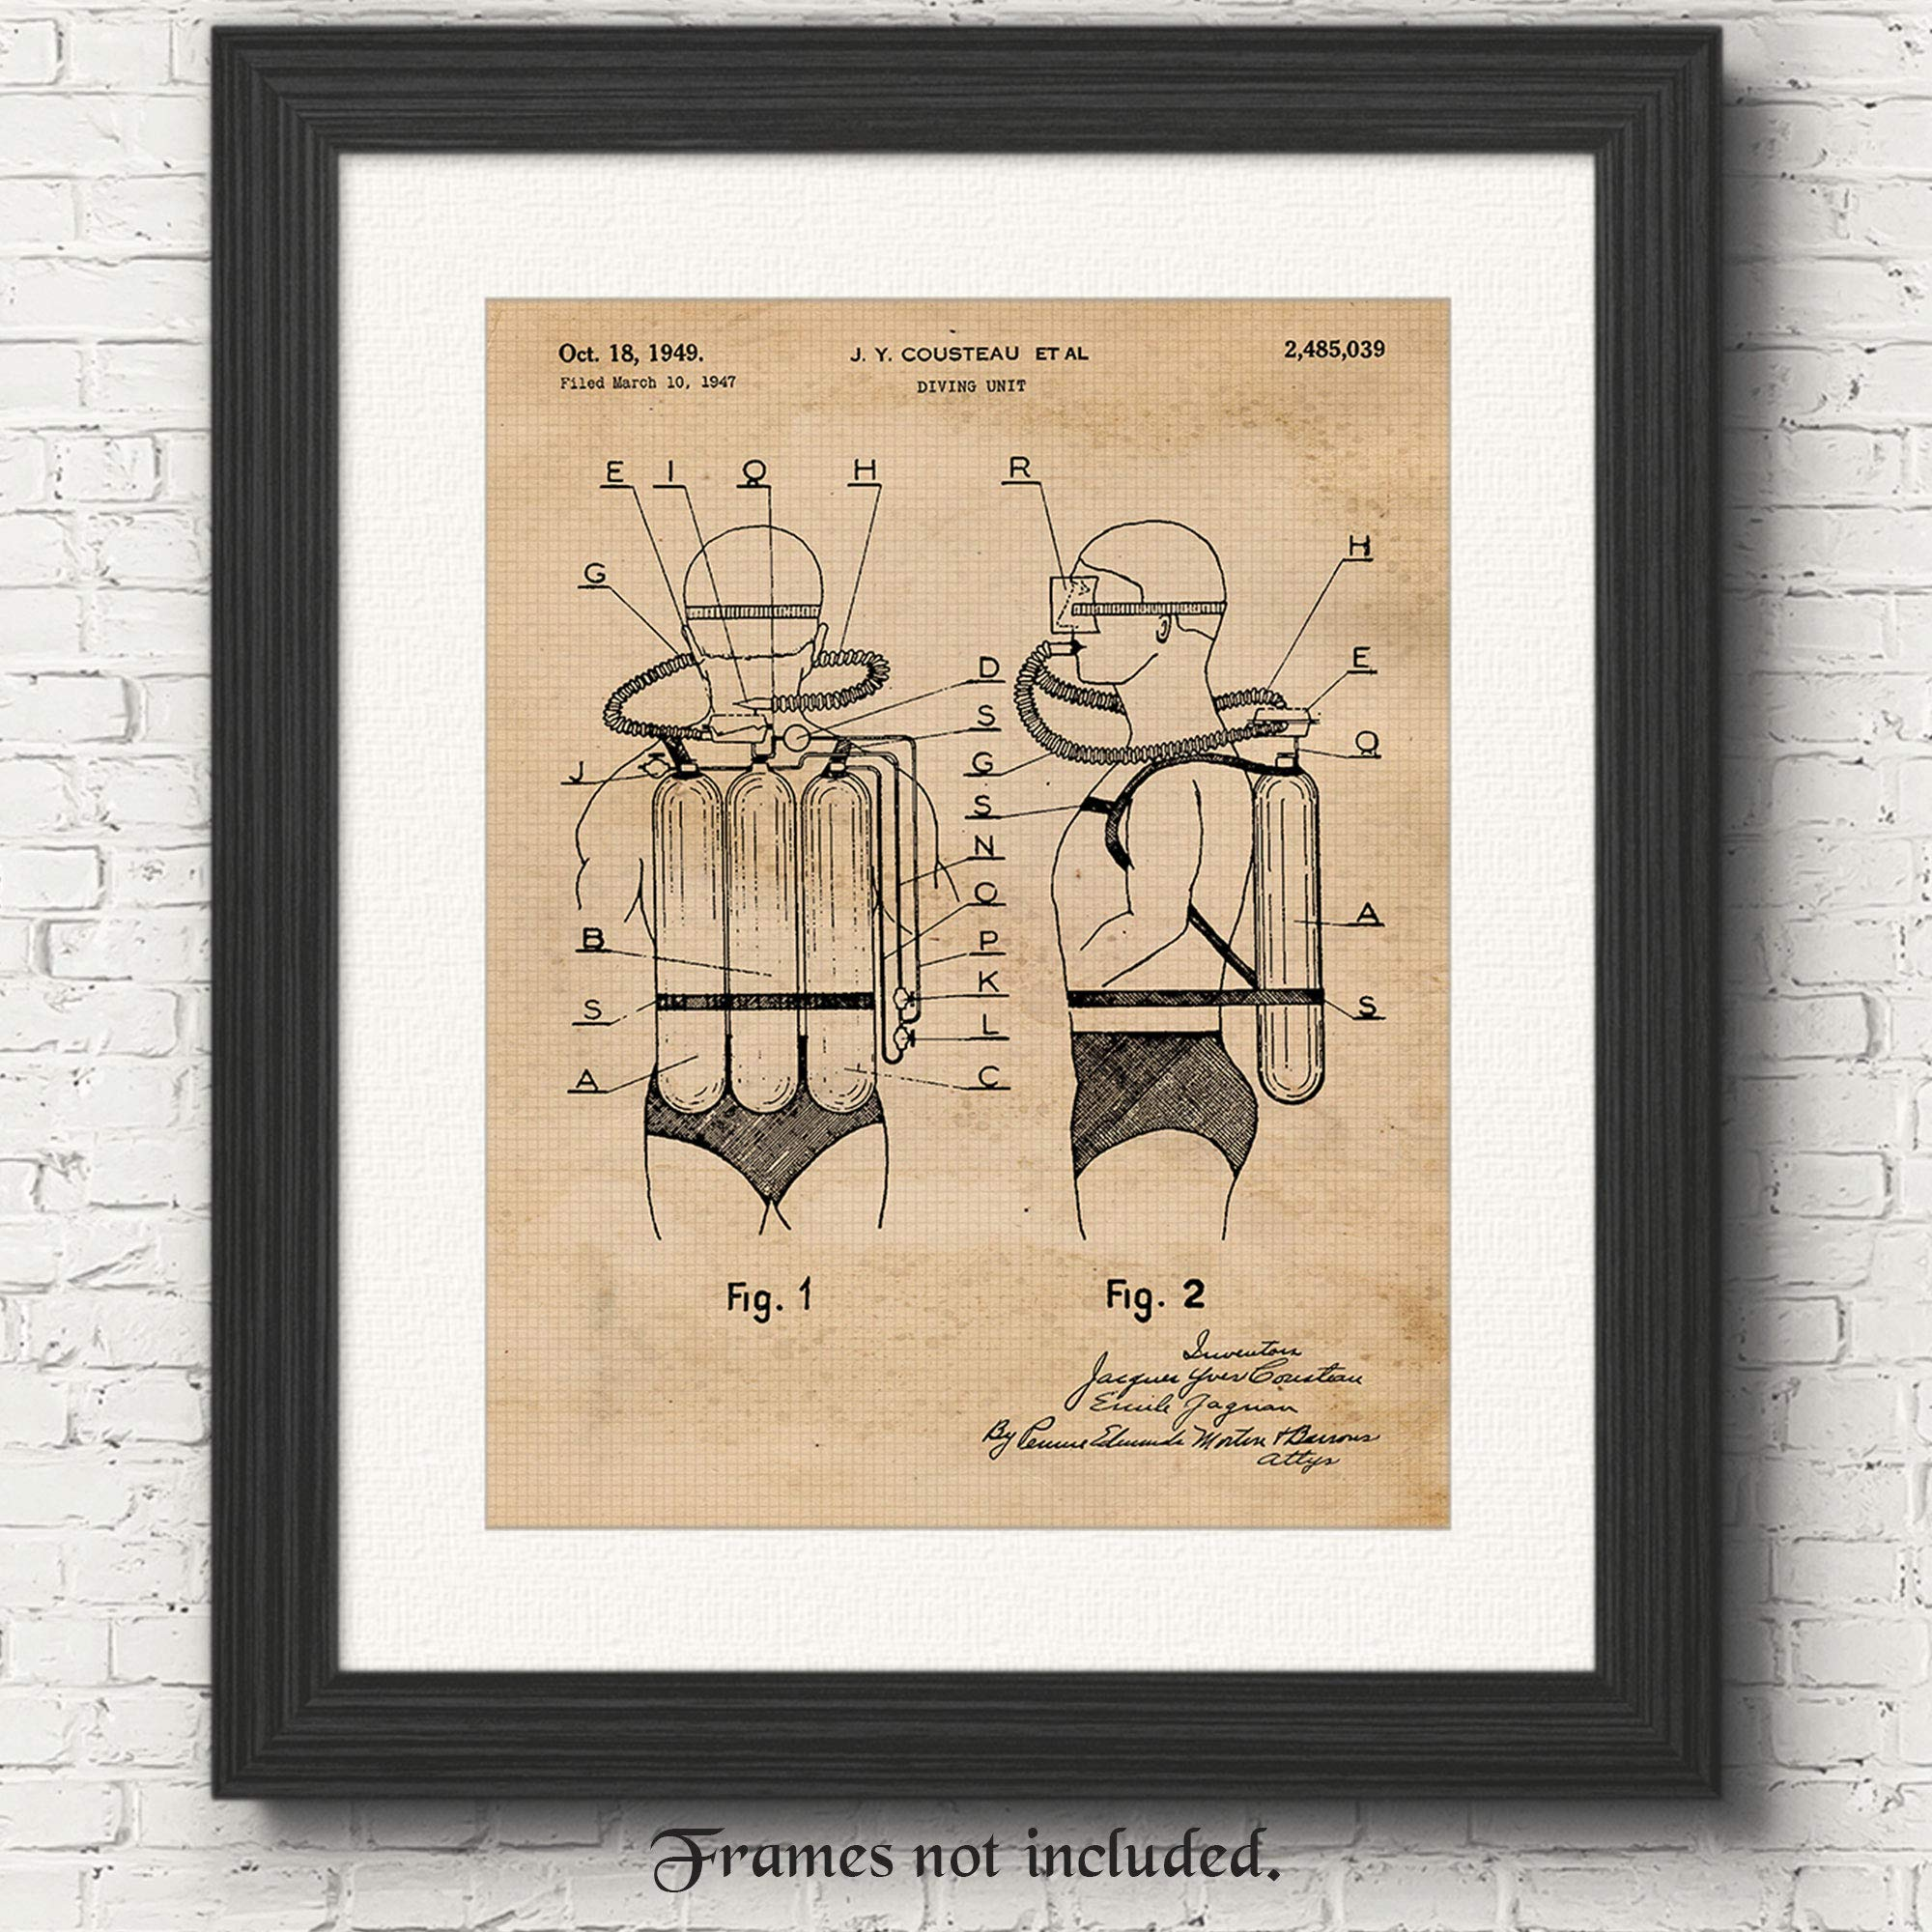 Original Scuba Diving Tank Patent Art Poster Prints, Set of 1 (11x14) Unframed Photo, Great Wall Art Decor Gifts Under 15 for Home, Office, Studio, Garage, Shop, Man Cave, Student, Teacher, Ocean Fan by Stars by Nature